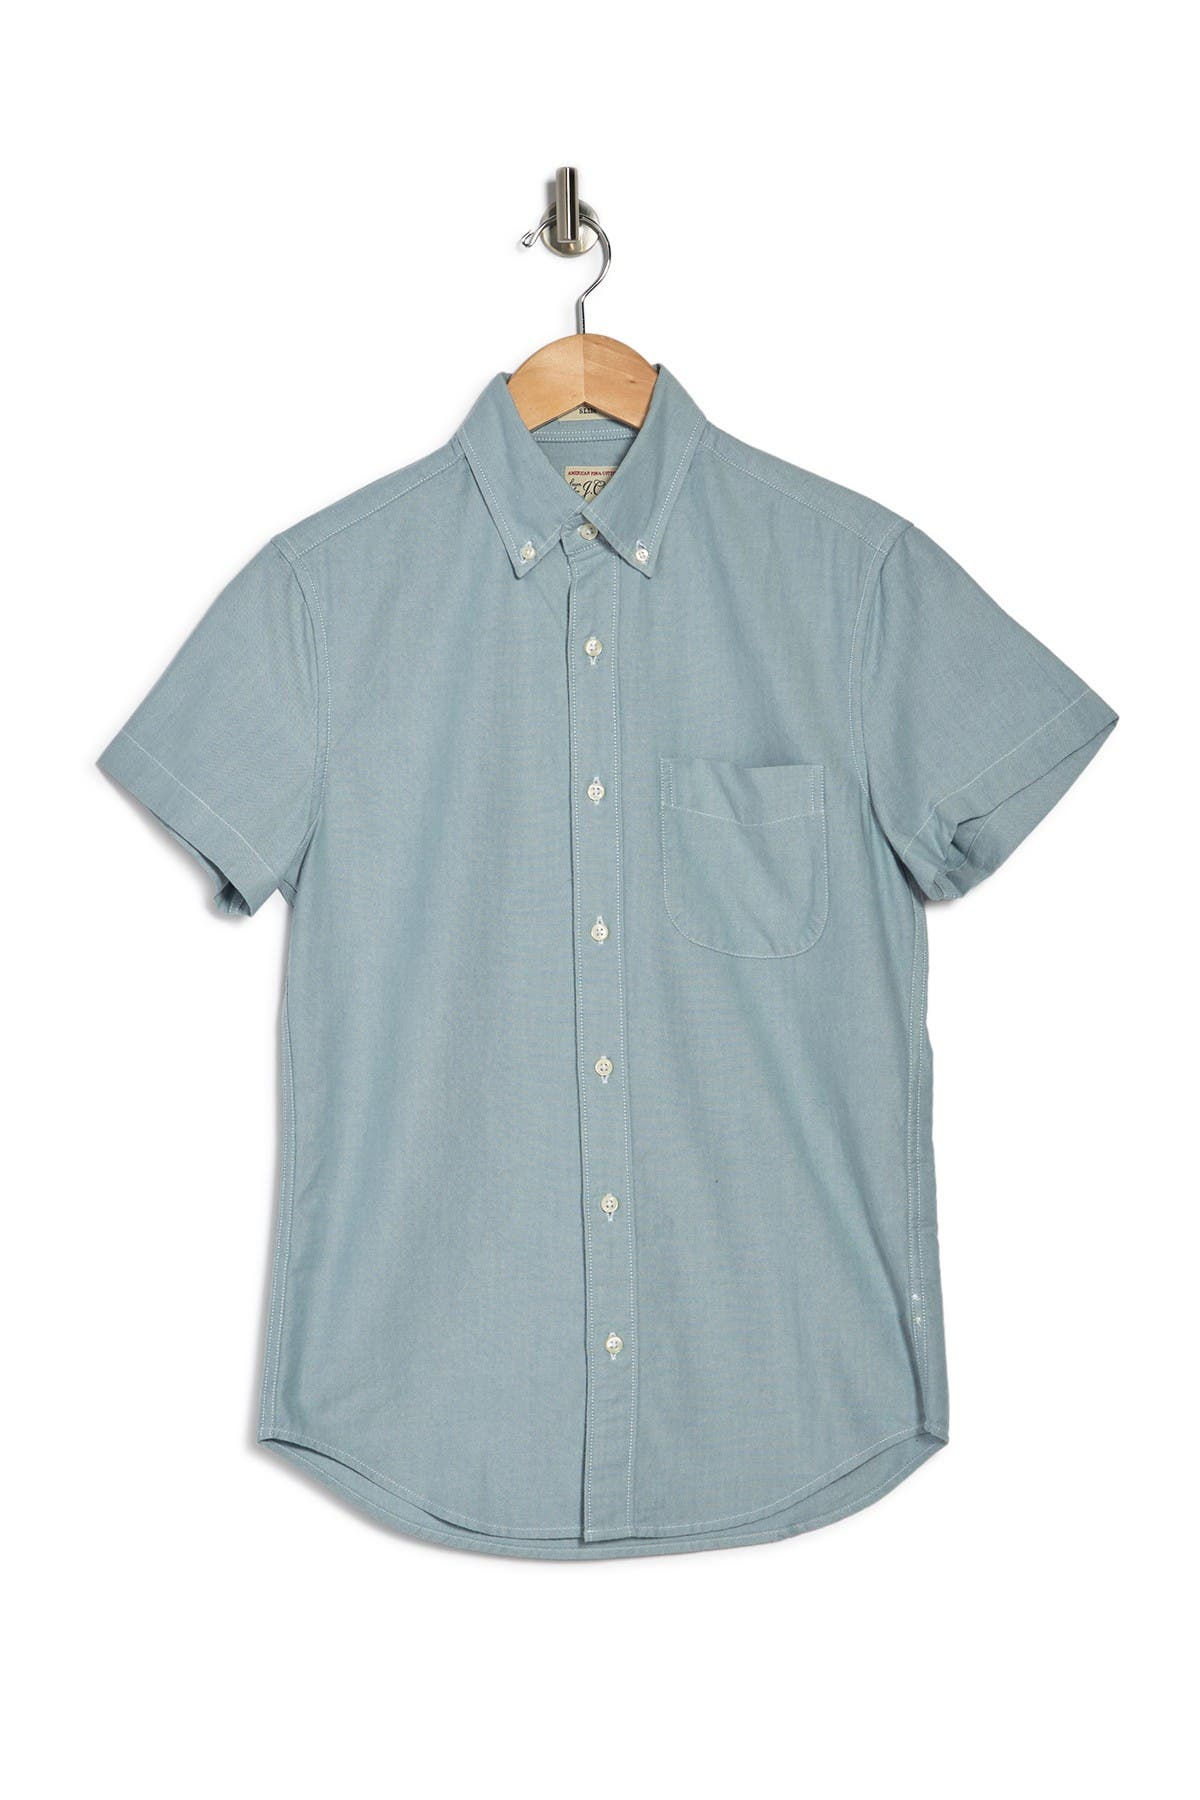 J. Crew Oxford Regular Fit Shirt In Seaside